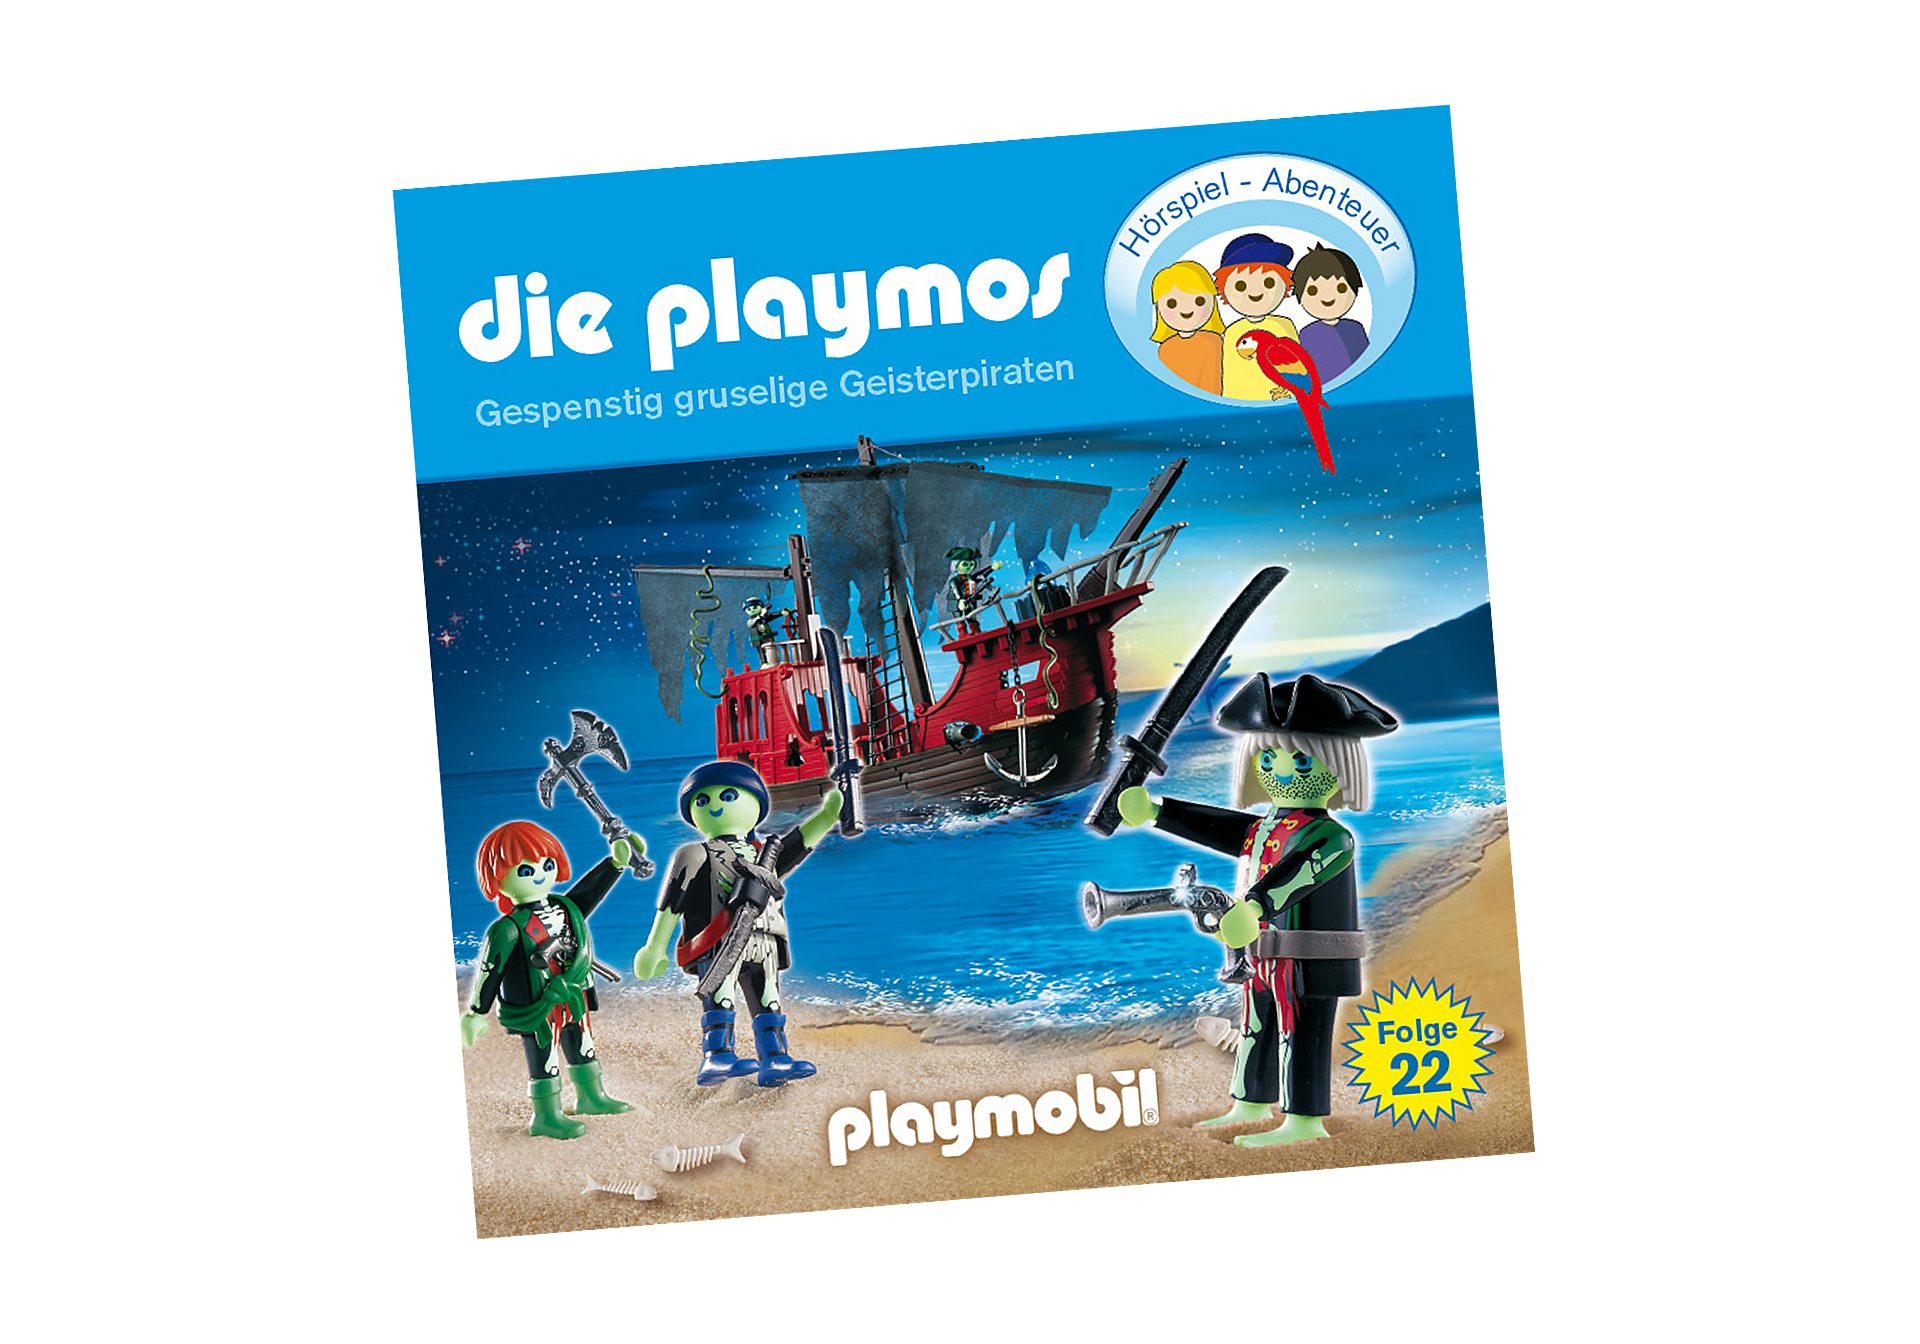 http://media.playmobil.com/i/playmobil/80323_product_detail/Gespenstig gruselige Geisterpiraten (22) - CD